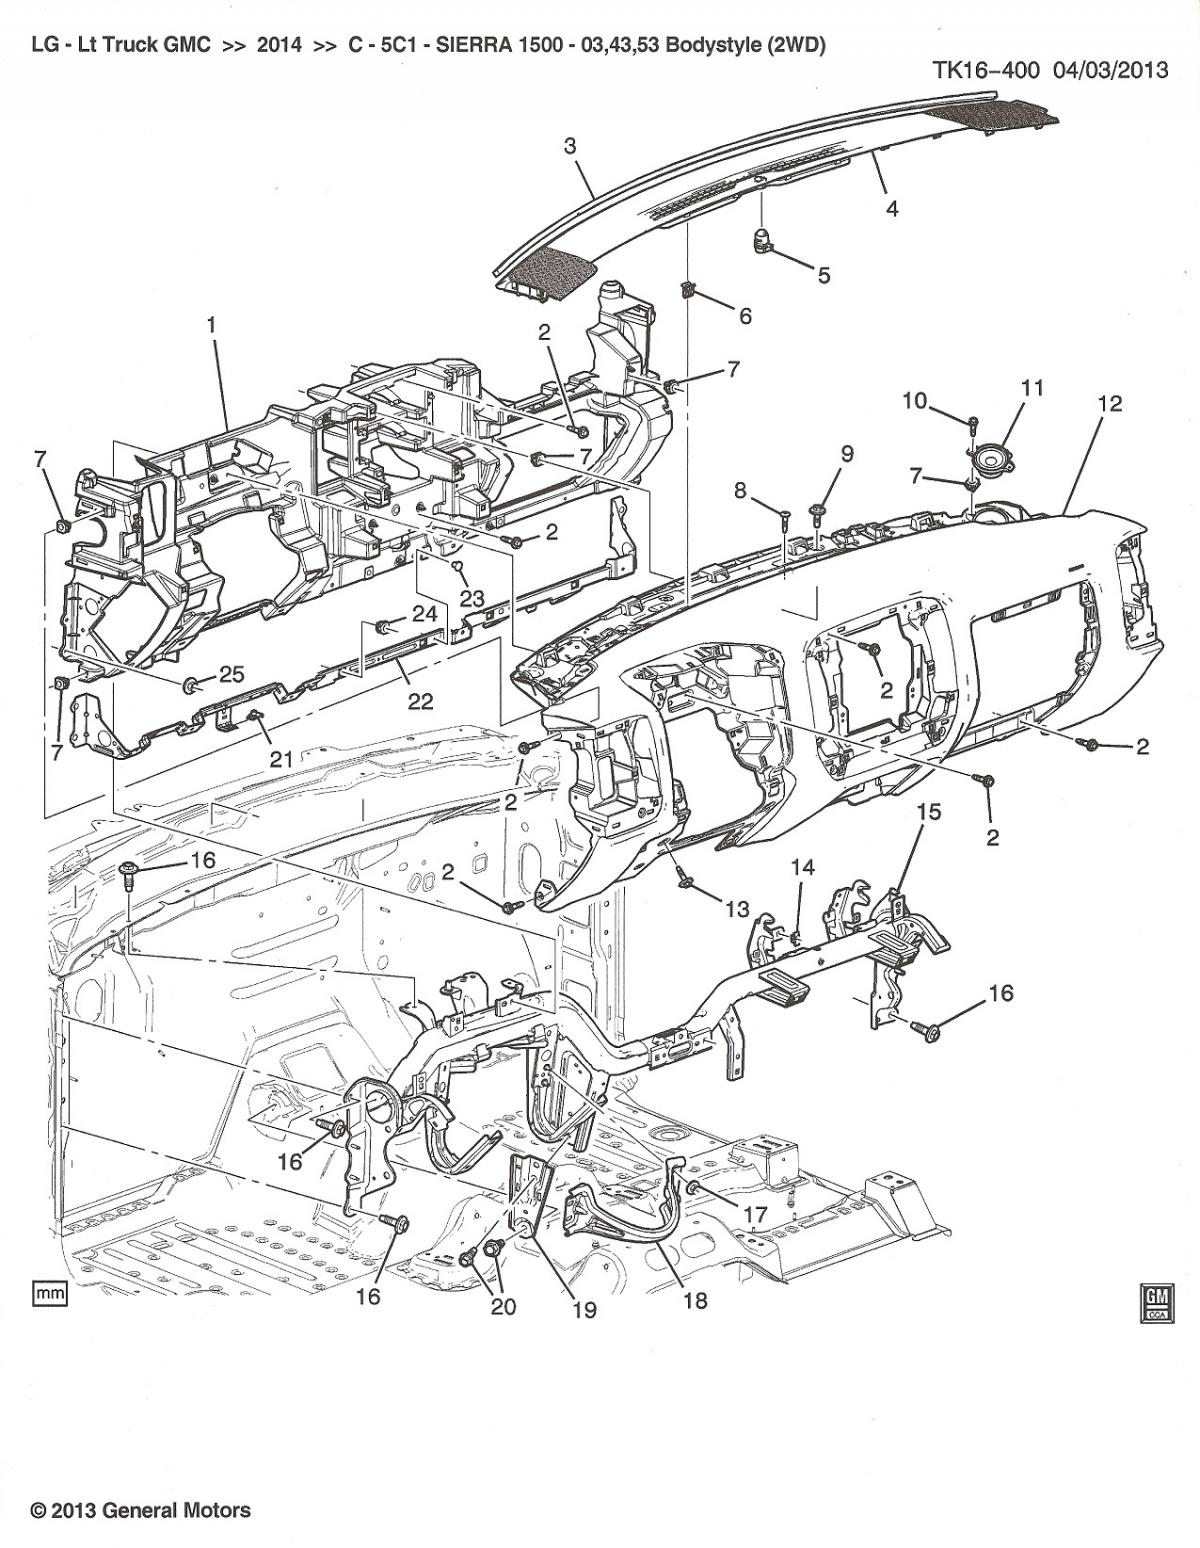 Chevy Silverado Front End Parts Diagram